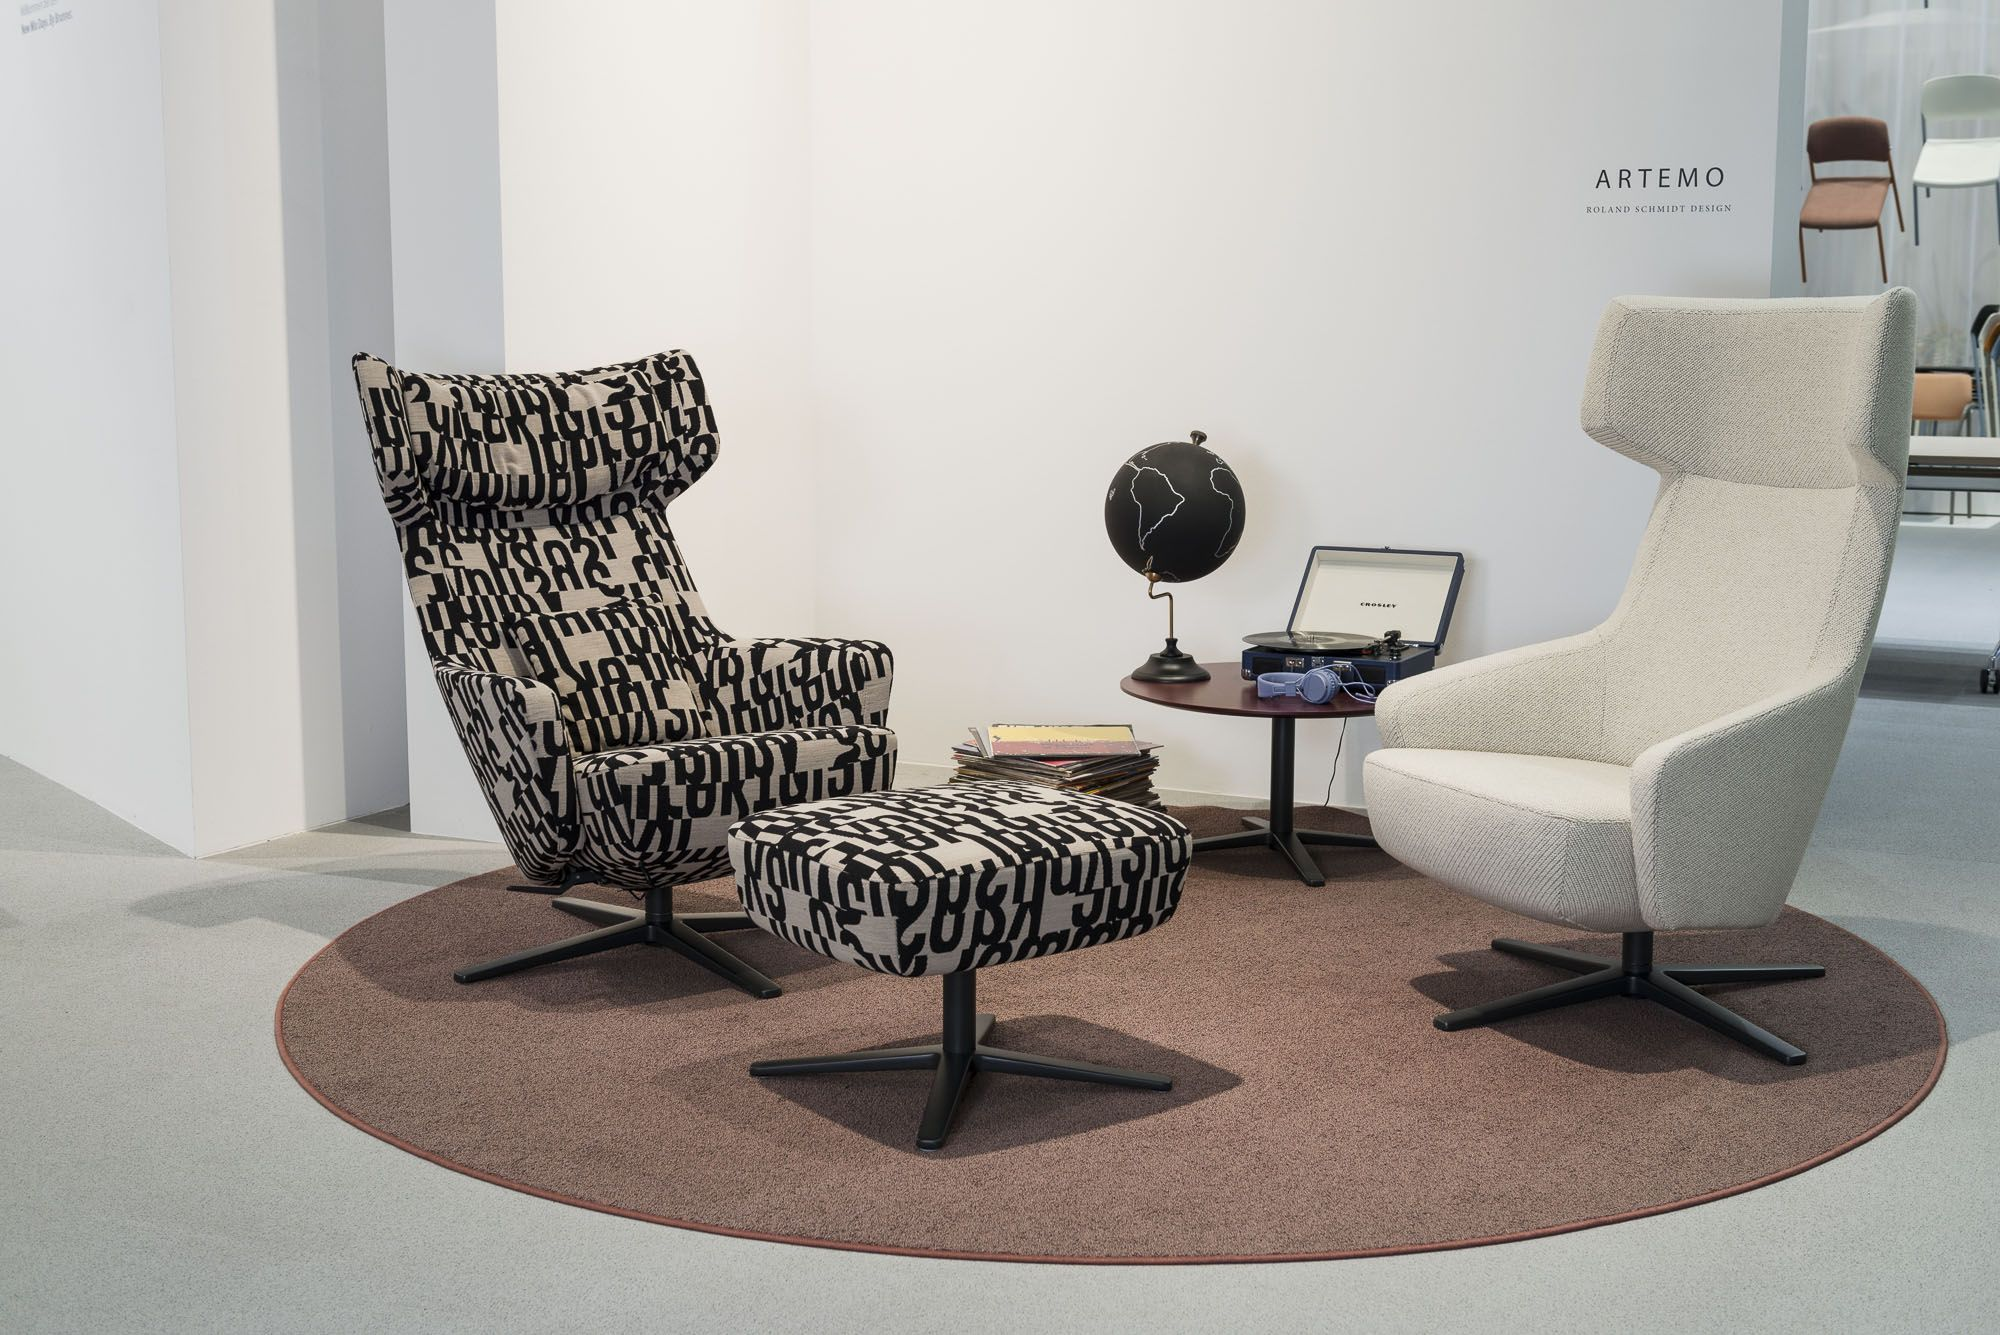 Pin by Brunner Group on Fairs | Pinterest